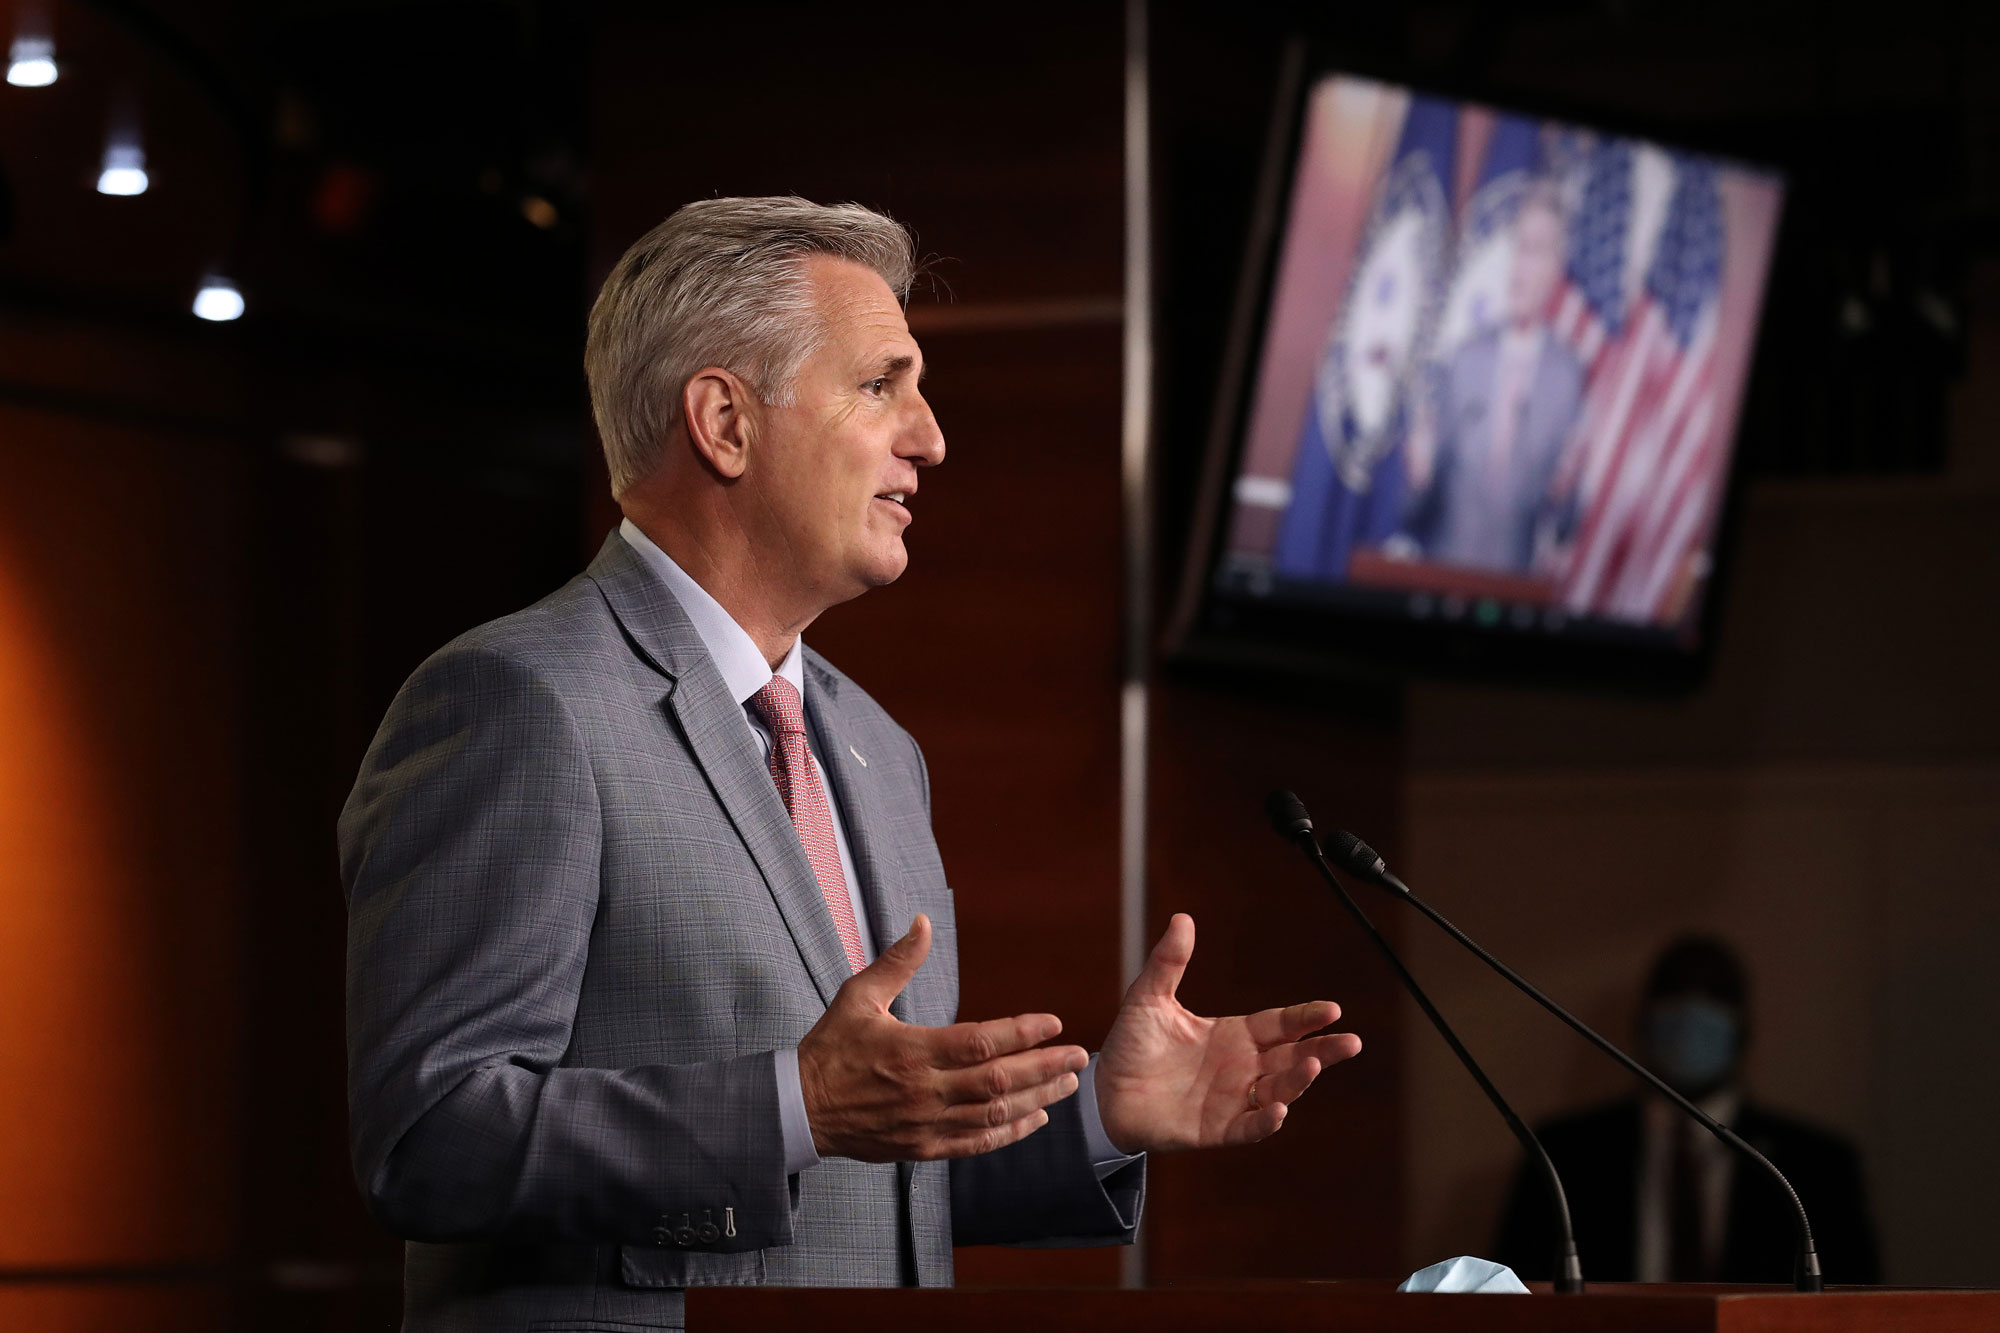 House Minority Leader Kevin McCarthy (R-CA) talks to reporters during a news conference at the U.S. Capitol on May 15 in Washington.